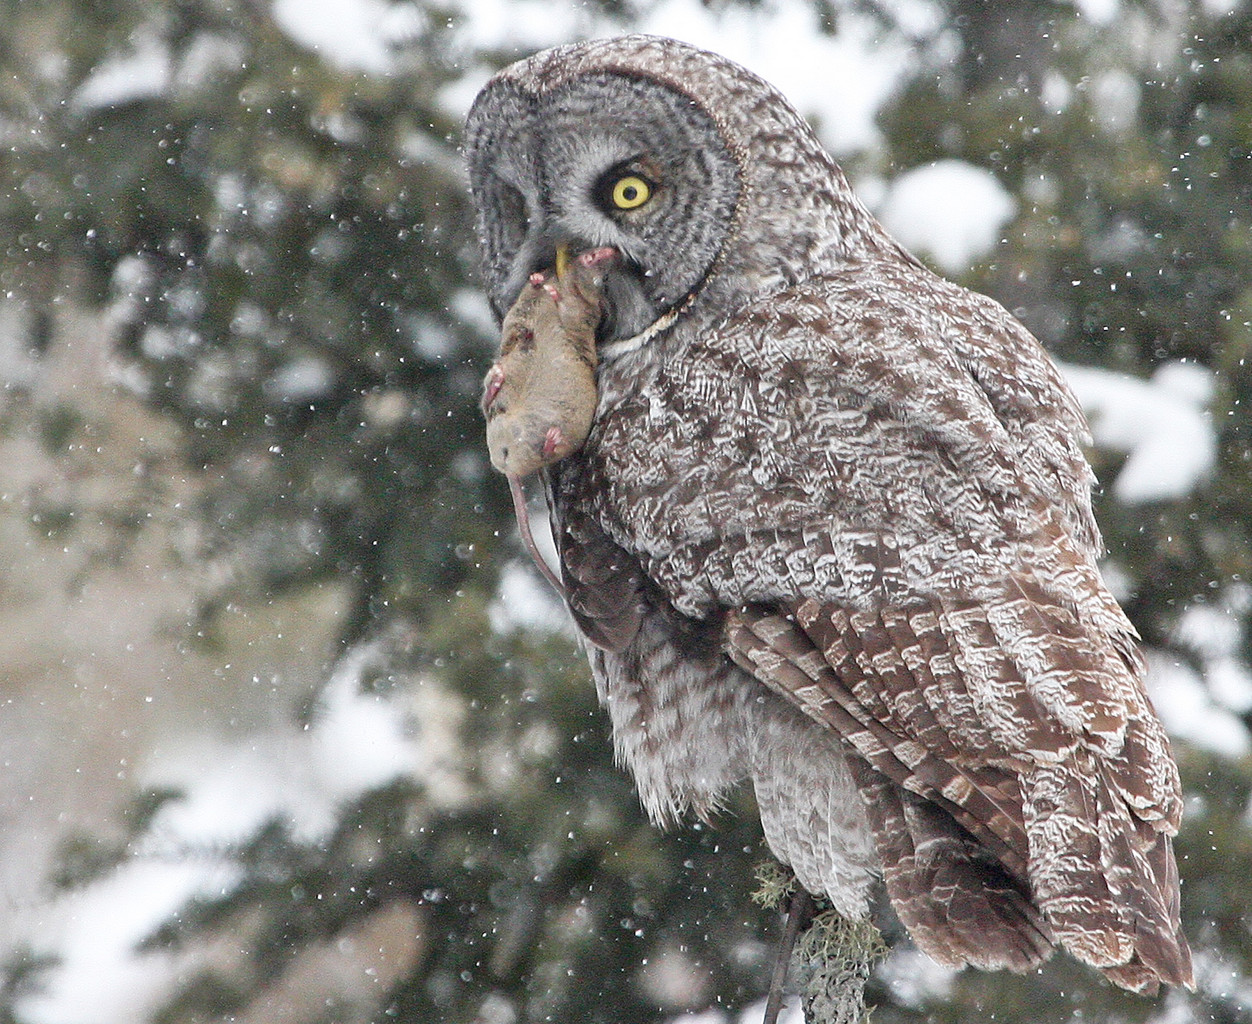 Success. A great gray owl finds a meal.